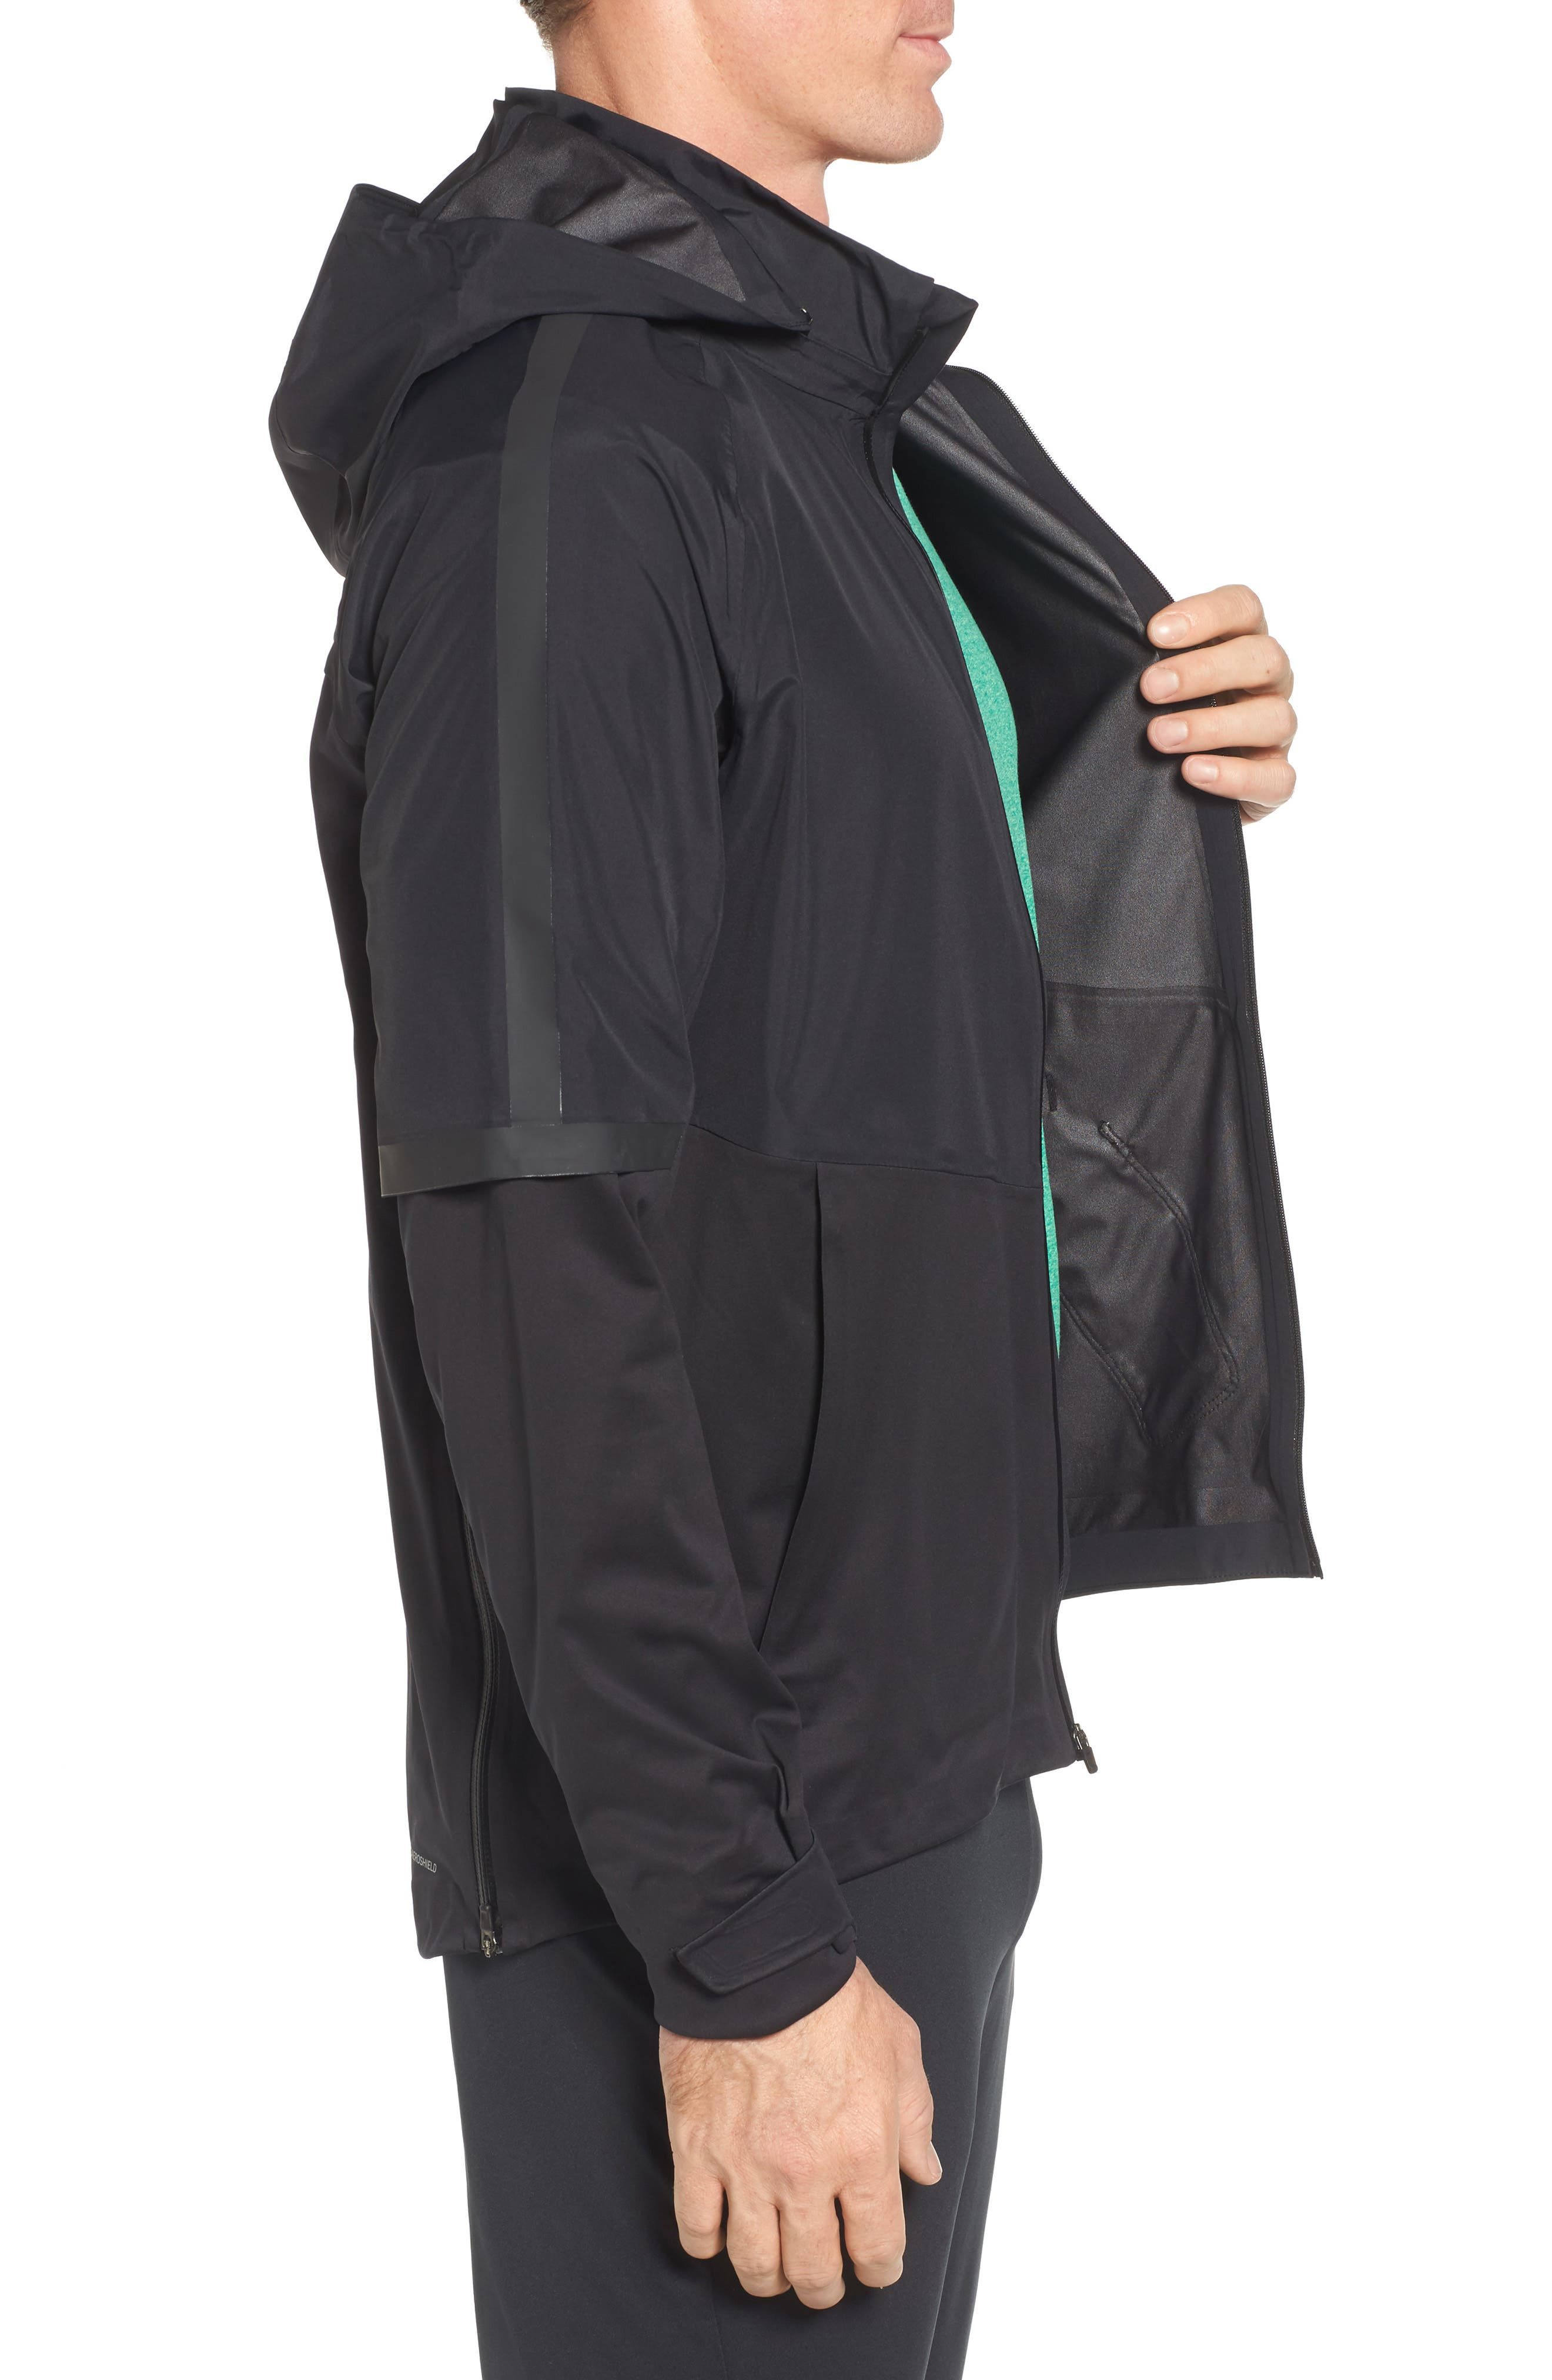 AeroShield Running Jacket,                             Alternate thumbnail 3, color,                             010